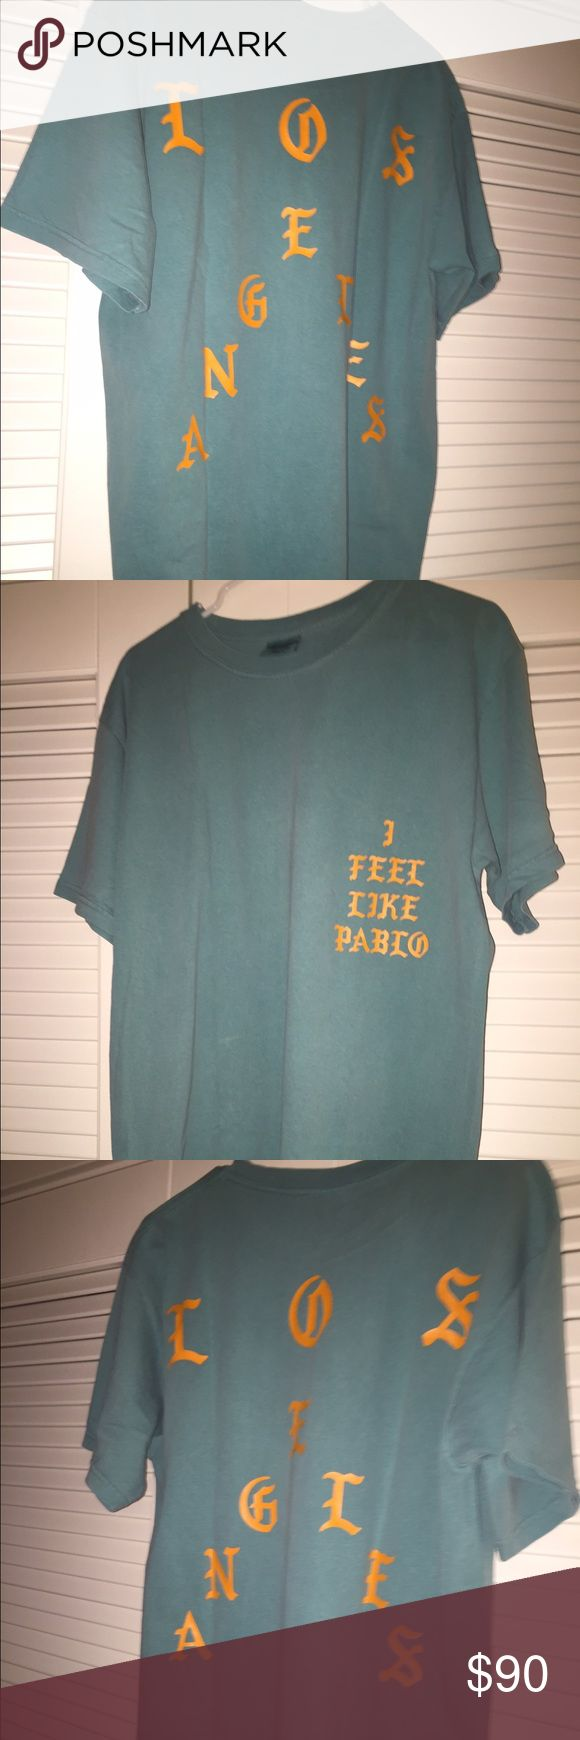 Kanye West tour merch TLOP size Large brand new. Brand new never worn the life of Pablo your shirt. Size large. kanye west Yeezy Shirts Tees - Short Sleeve